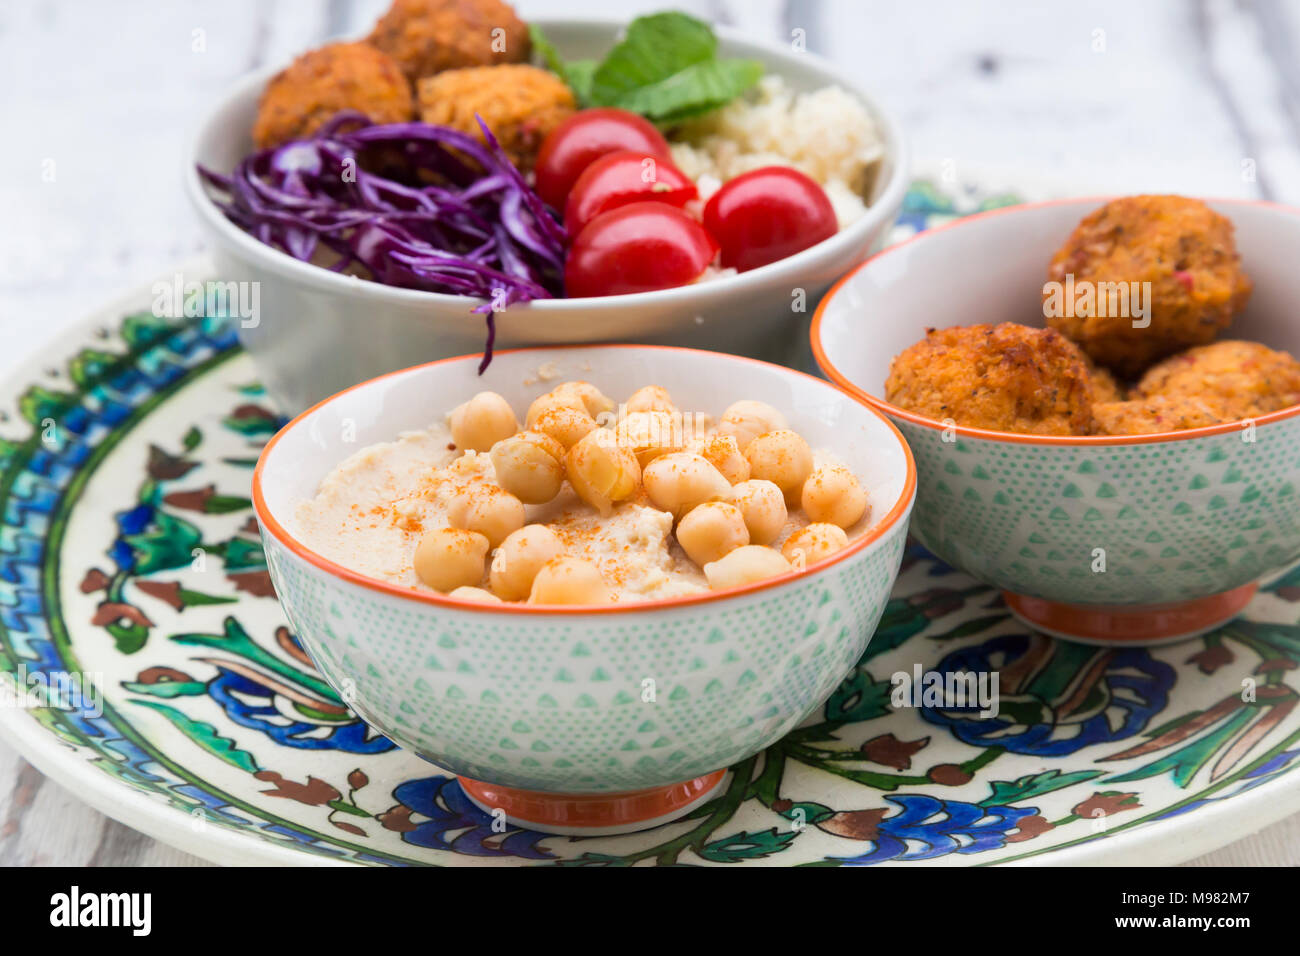 Hummus, sweet potato balls, Couscous and vegetables in bowls - Stock Image